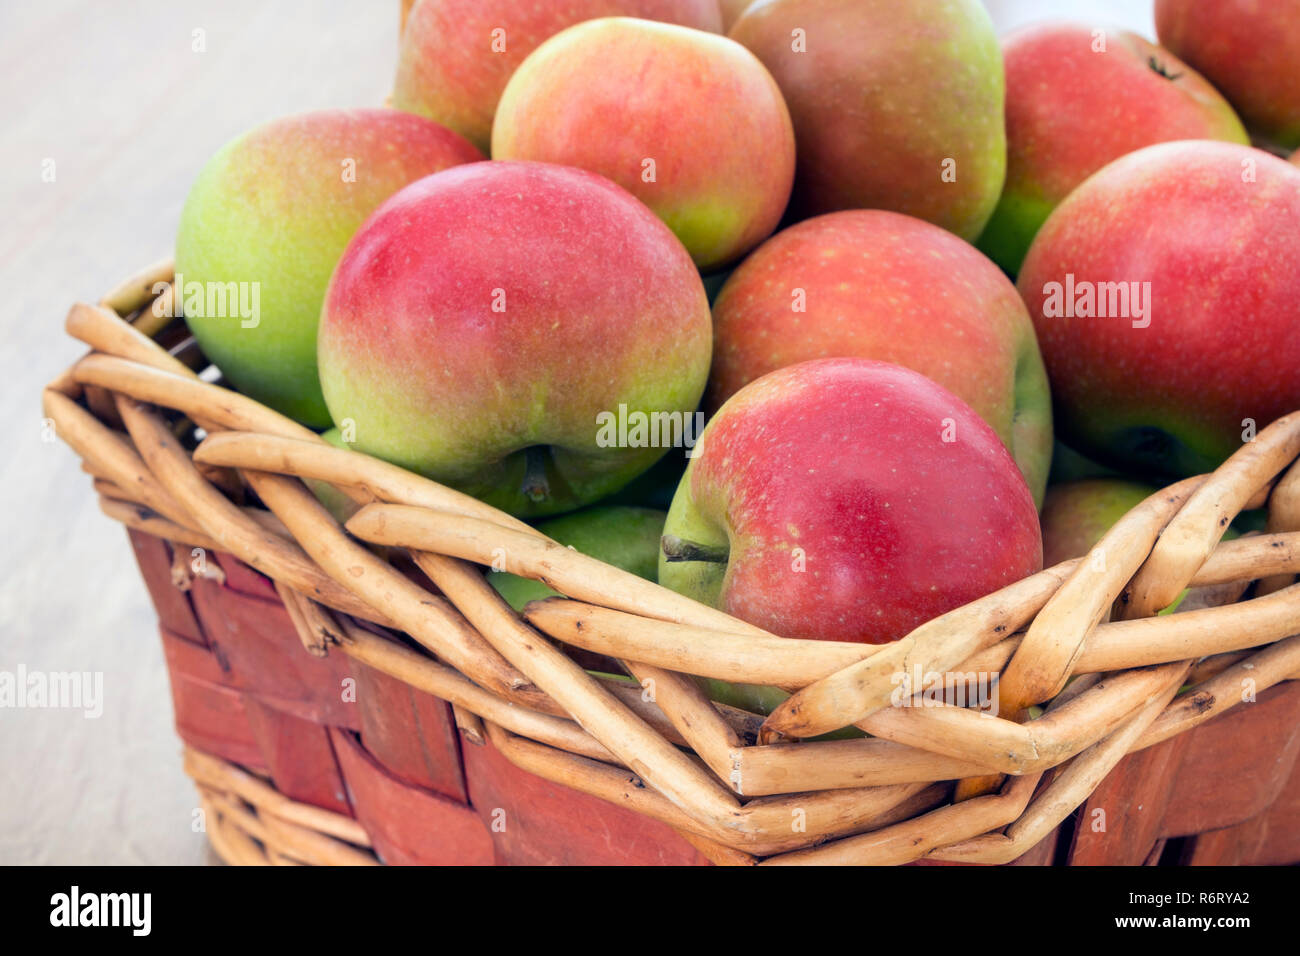 A Freshly Picked Basket of Discovery (Malus domestica) Apples. - Stock Image